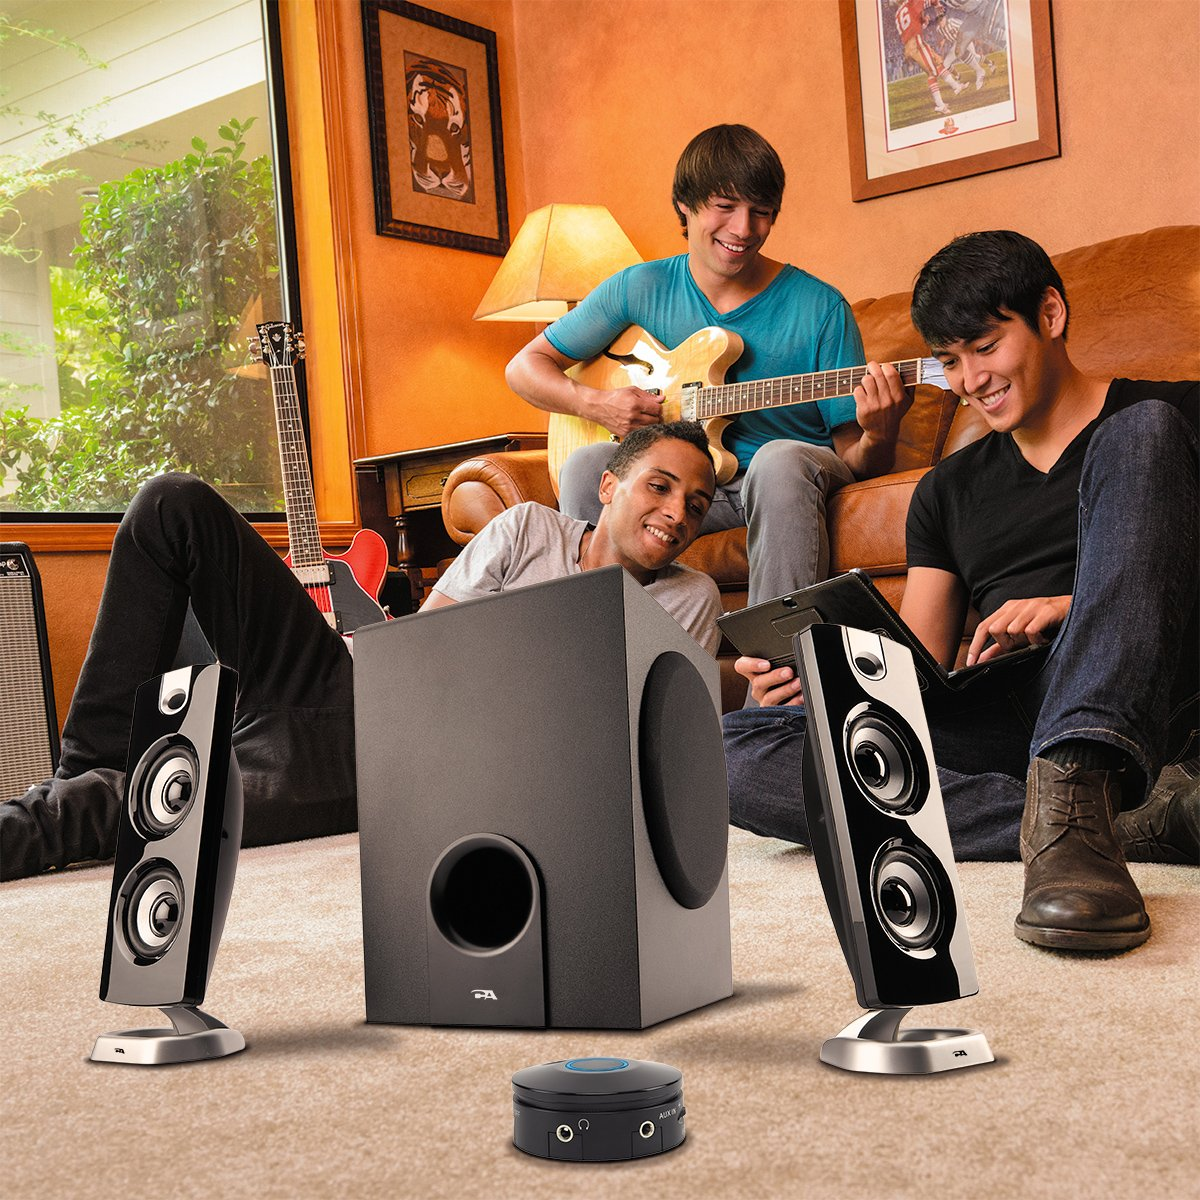 Cyber Acoustics CA-3602a 62W Desktop Computer Speaker with Subwoofer - Perfect 2.1 Gaming and Multimedia PC speakers by Cyber Acoustics (Image #7)